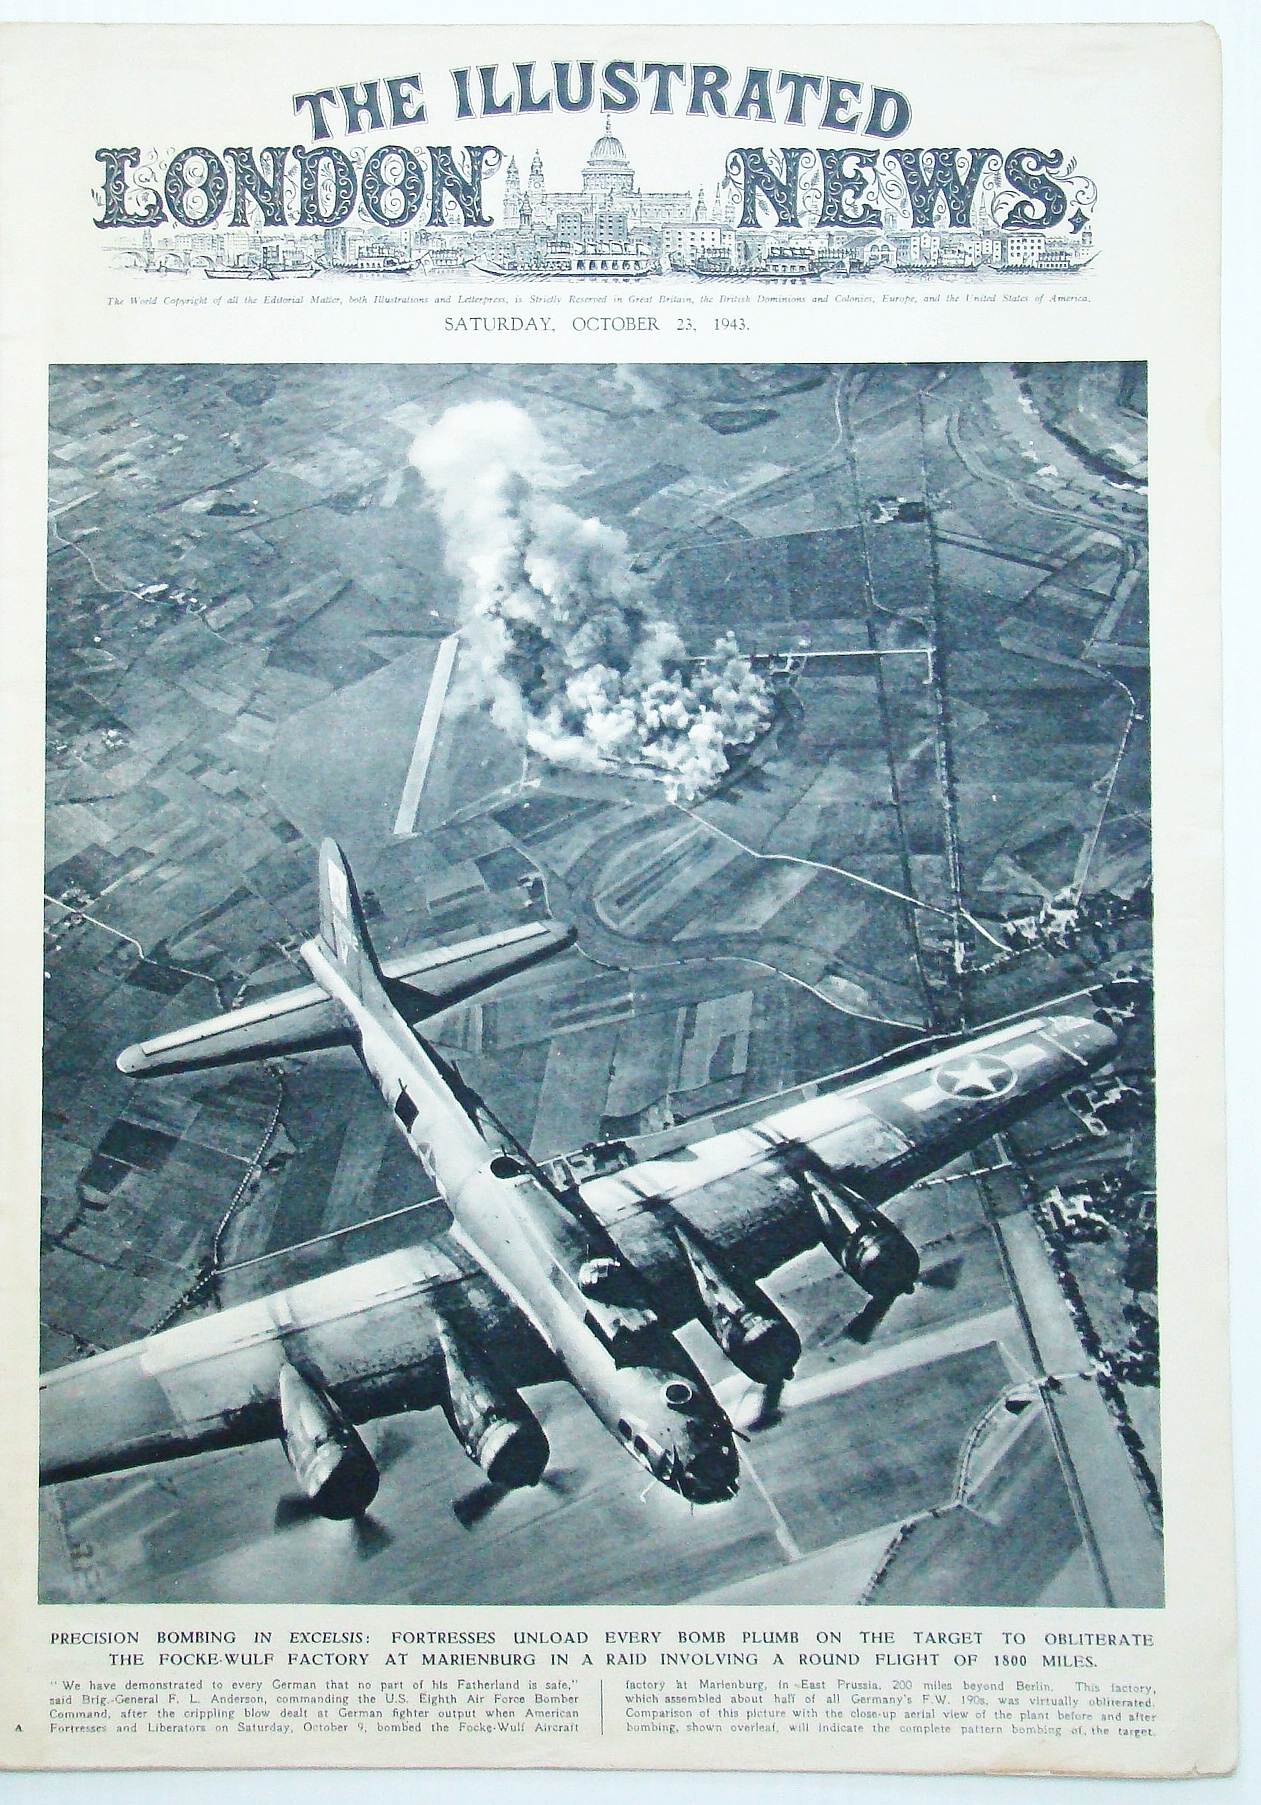 Image for The Illustrated London News (ILN), October (Oct.) 23, 1943 - Precision Bombing of Focke-Wulf Factory at Marienburg